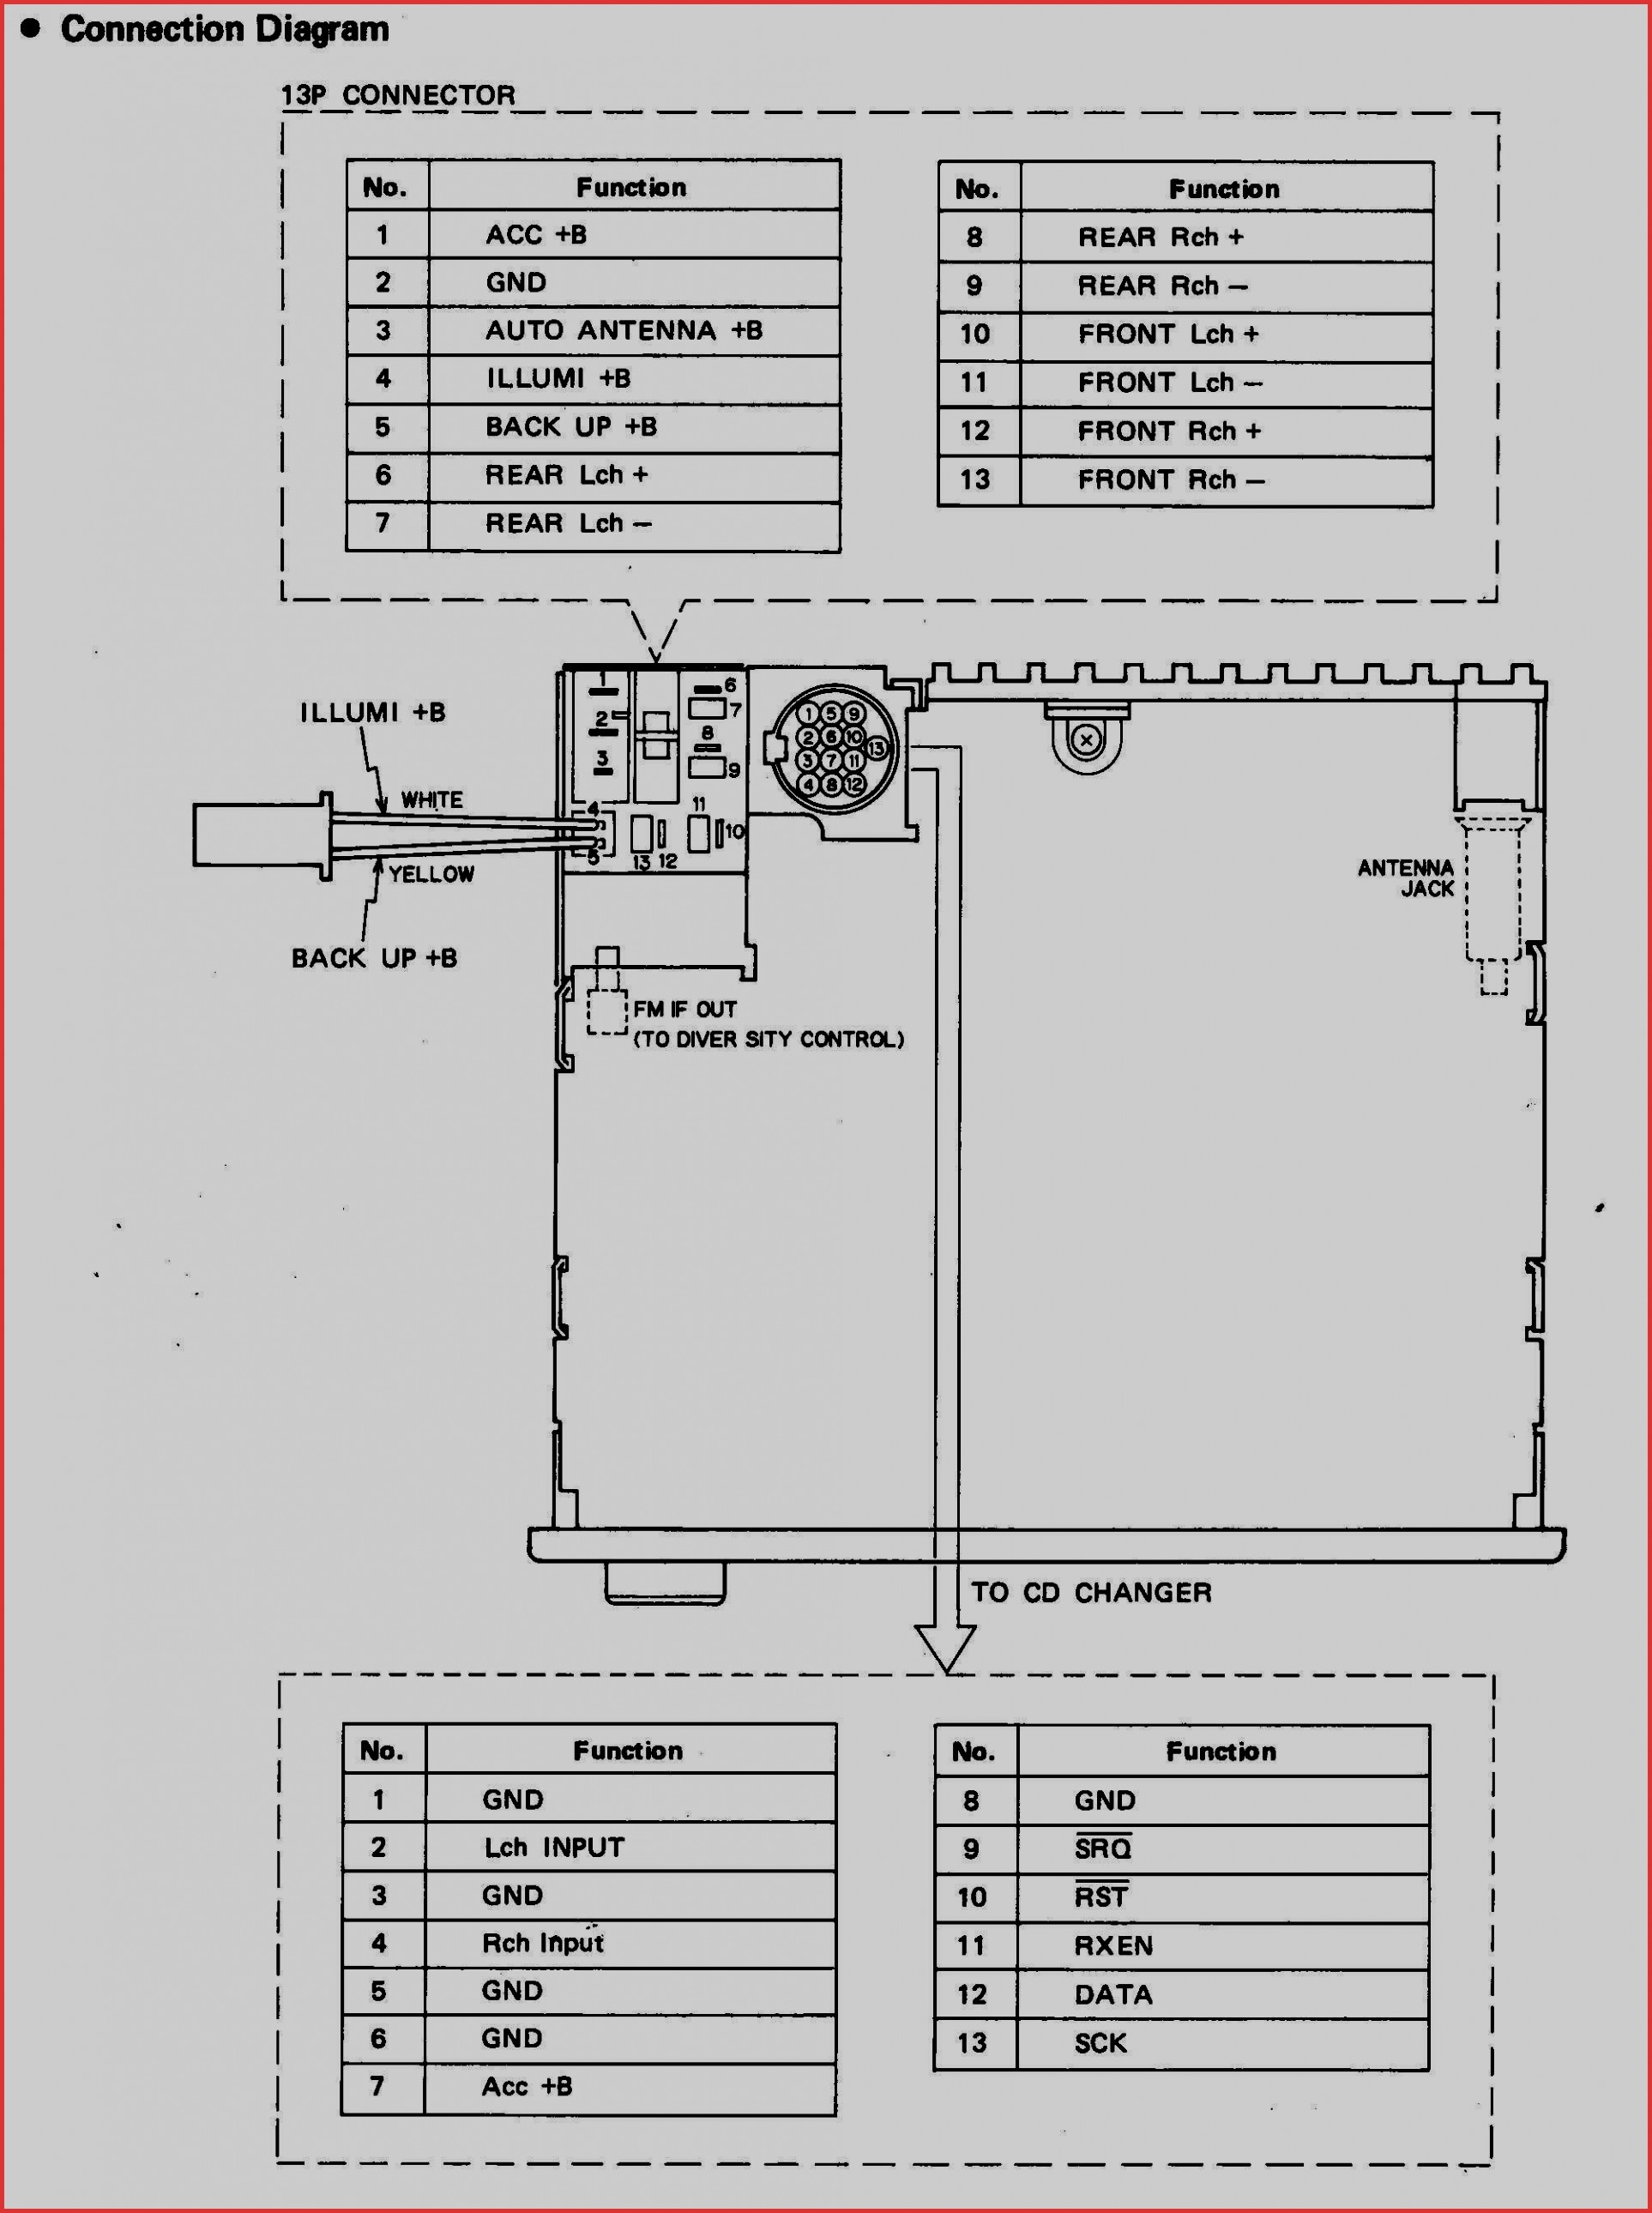 Sony Car Radio Wiring Diagram | My Wiring DIagram Xplod Amp Wiring Diagram on pioneer wiring diagram, rockford wiring diagram, stereo wiring diagram, viper wiring diagram, club wiring diagram, bluetooth wiring diagram, punch wiring diagram, audio wiring diagram, ipod wiring diagram, alpine wiring diagram, kenwood wiring diagram, clifford wiring diagram, panasonic wiring diagram, honda wiring diagram, rca wiring diagram, power wiring diagram, hard wiring diagram, jvc wiring diagram, sony wiring diagram, blaupunkt wiring diagram,